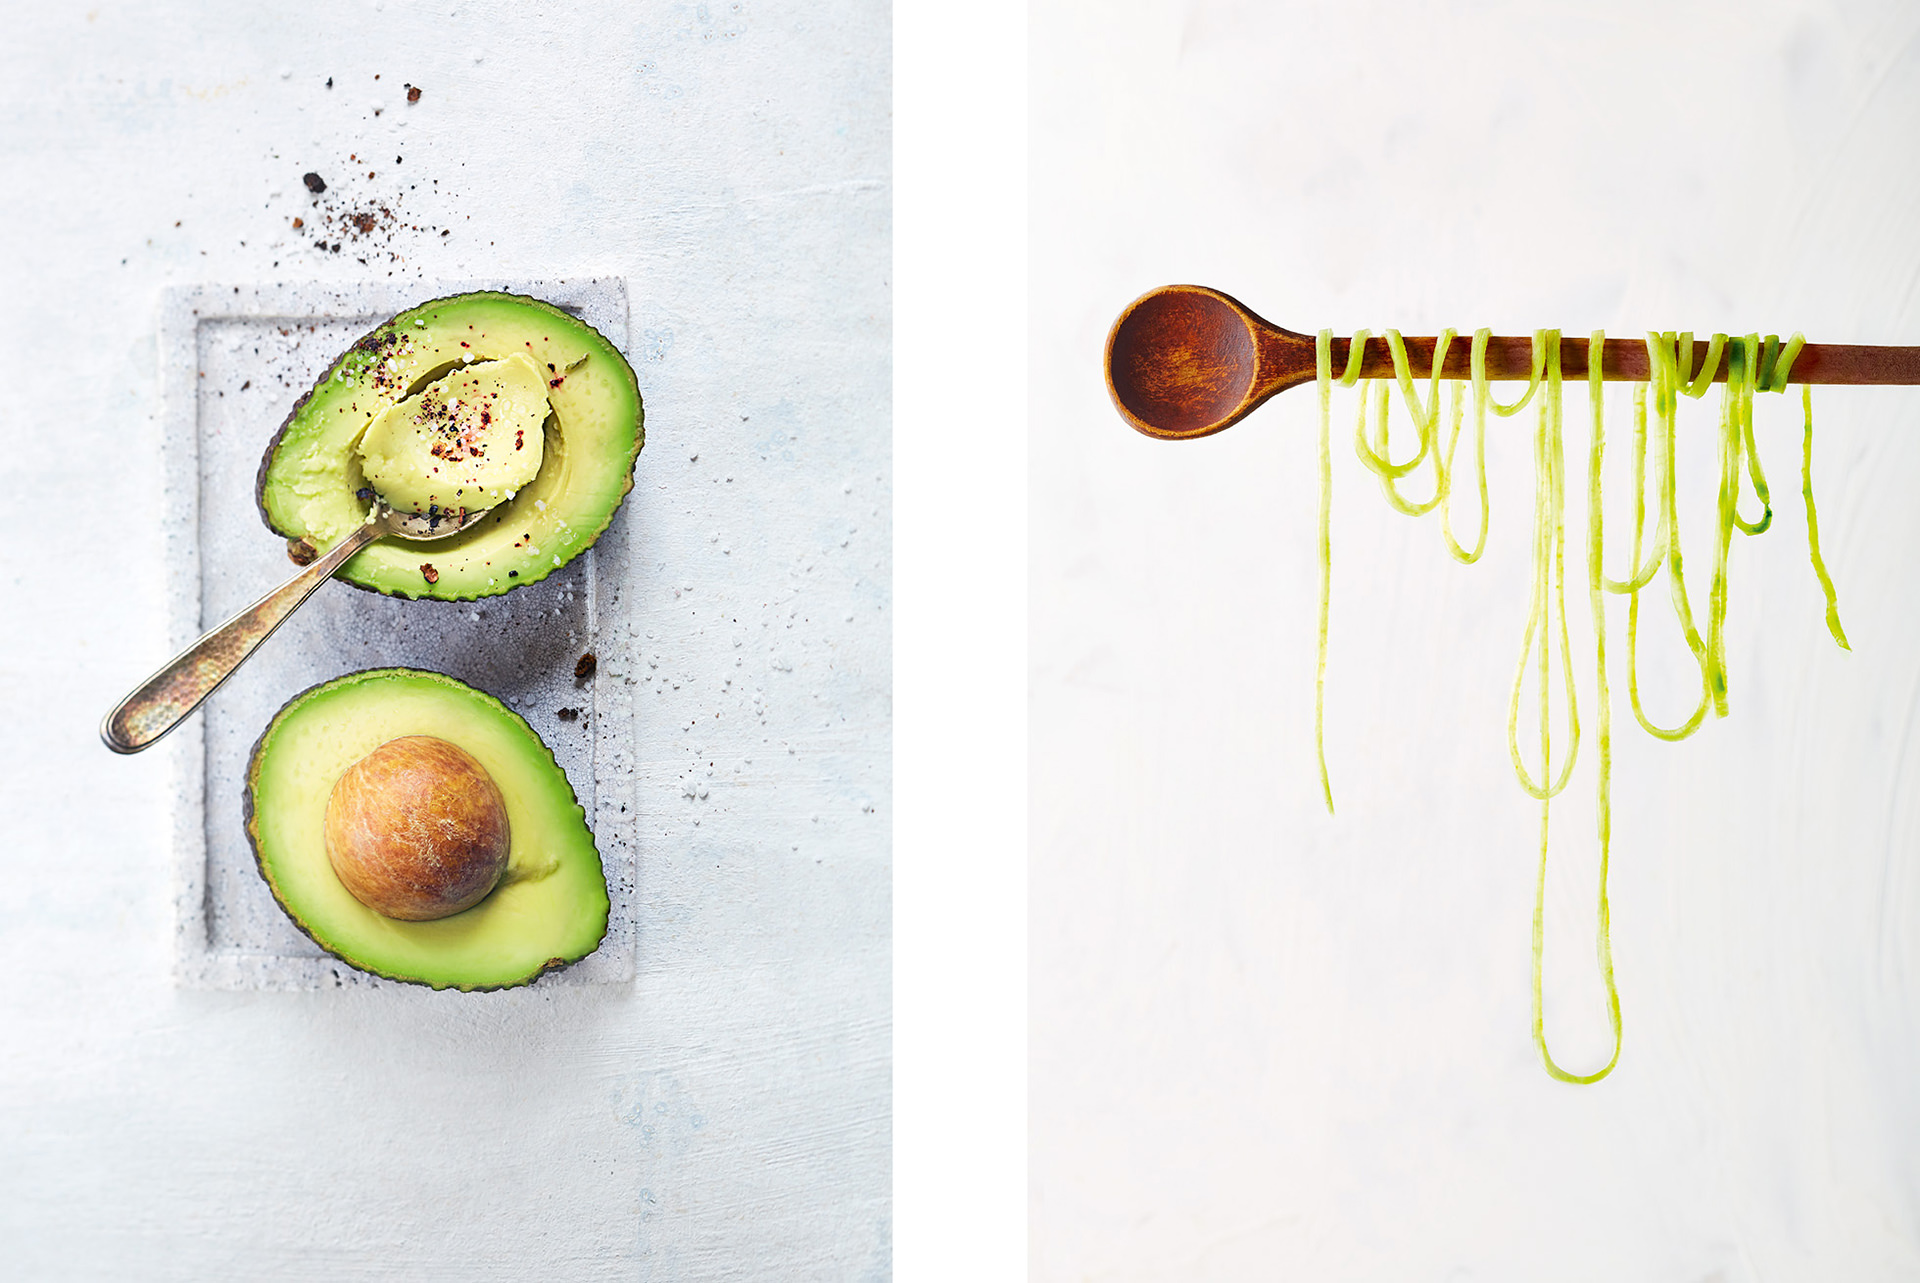 avocado-zoodle-kochloeffel-inspiration-visual-feeling.jpg